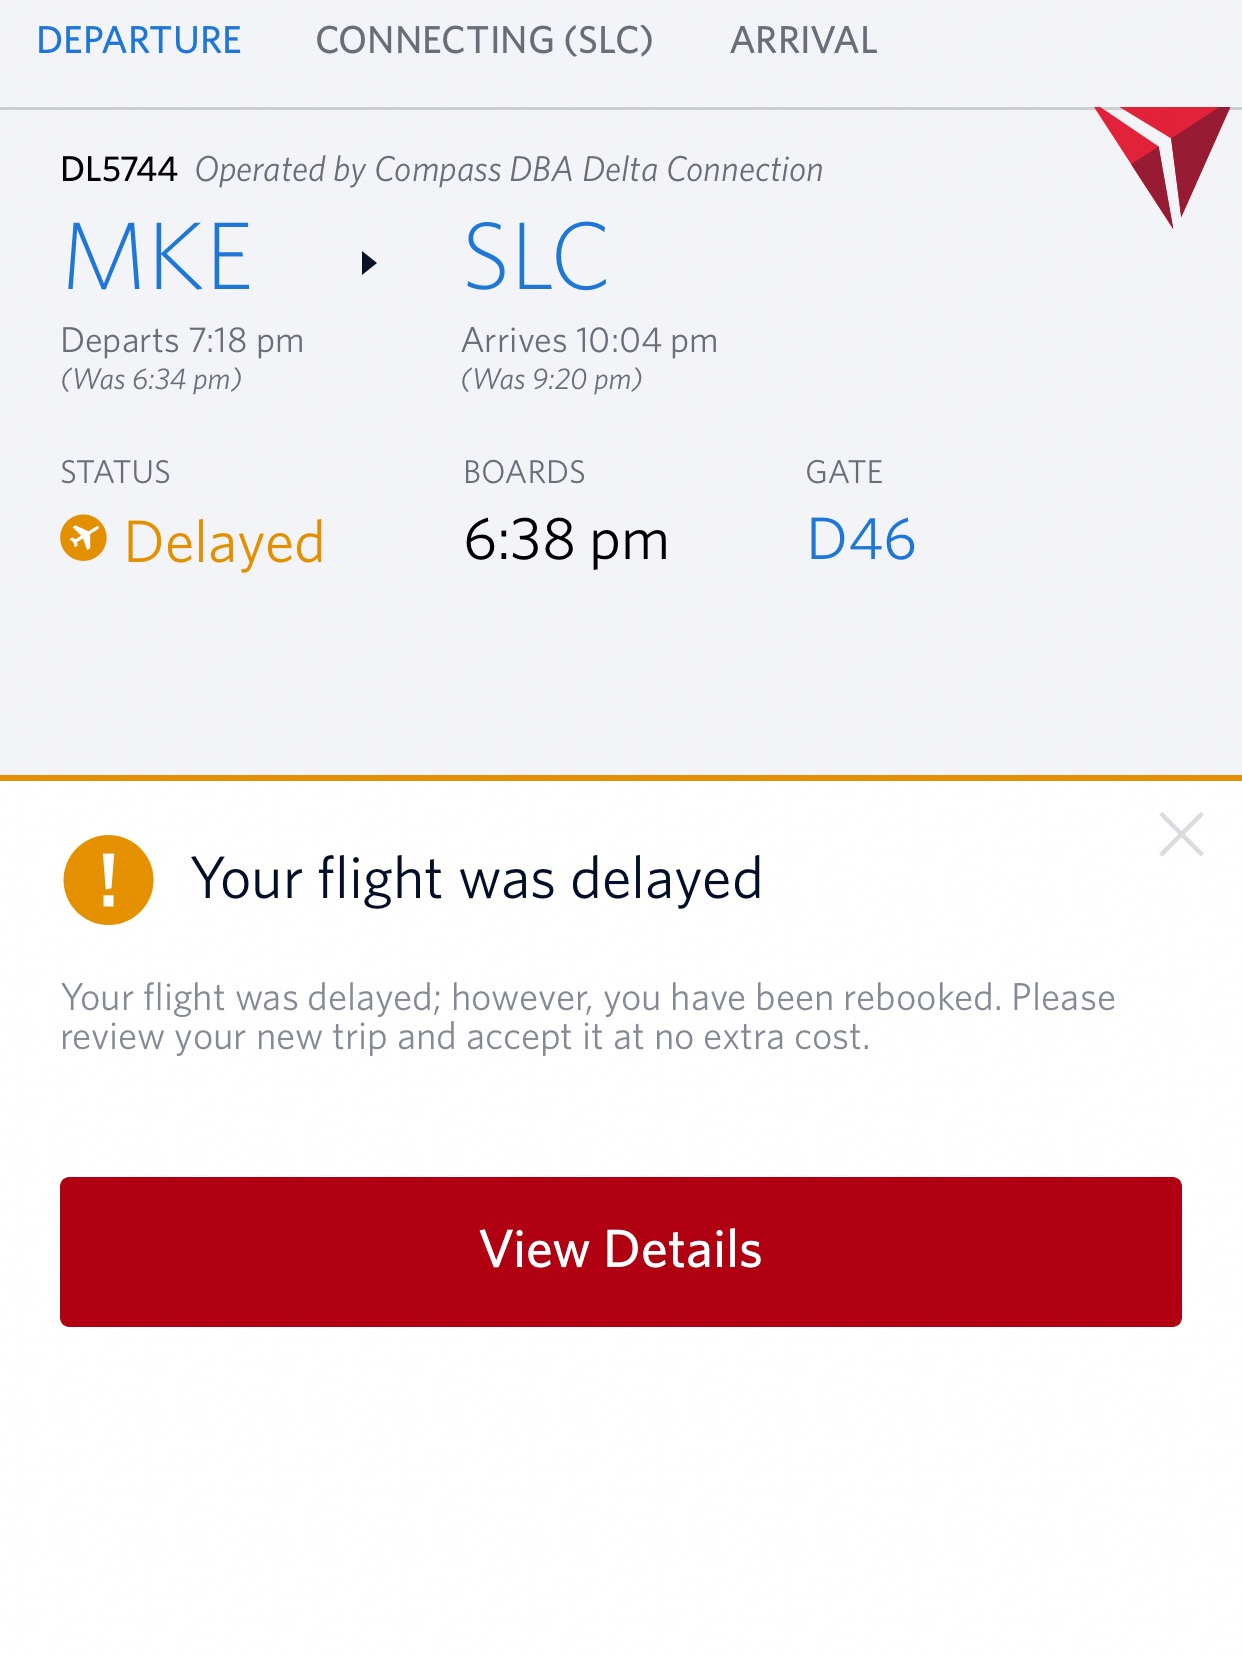 Delta has an incredibly efficient way of notifying you if your flight is delayed. Within a matter of minutes of the initial delay, I received a phone call and received a notification on the Delta App.